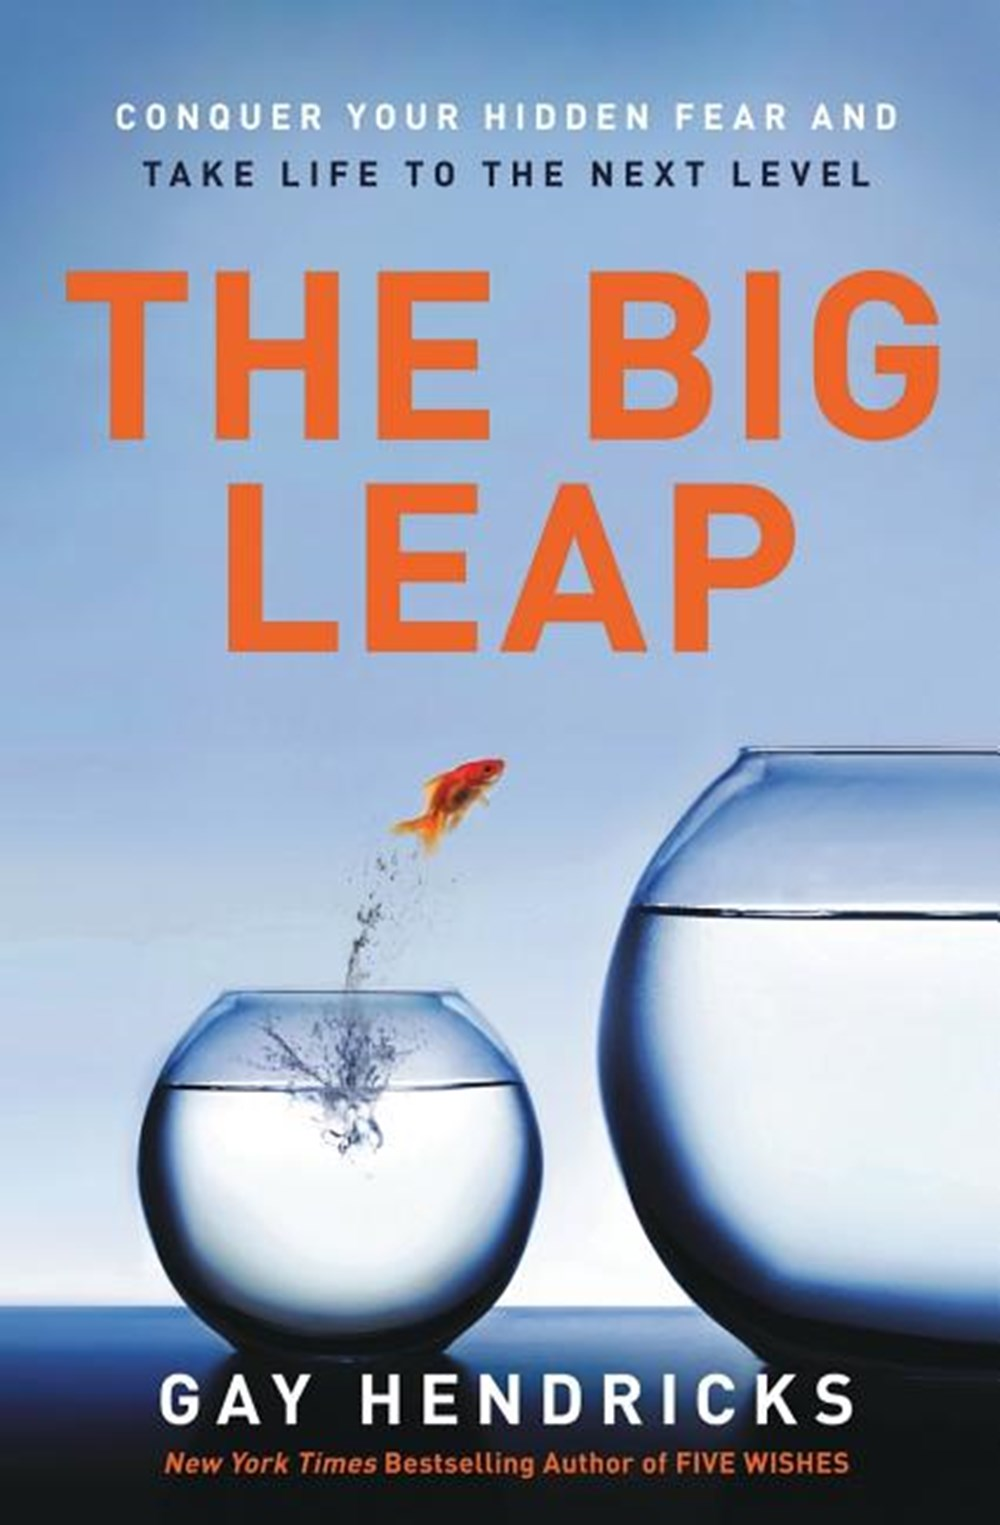 Big Leap Conquer Your Hidden Fear and Take Life to the Next Level